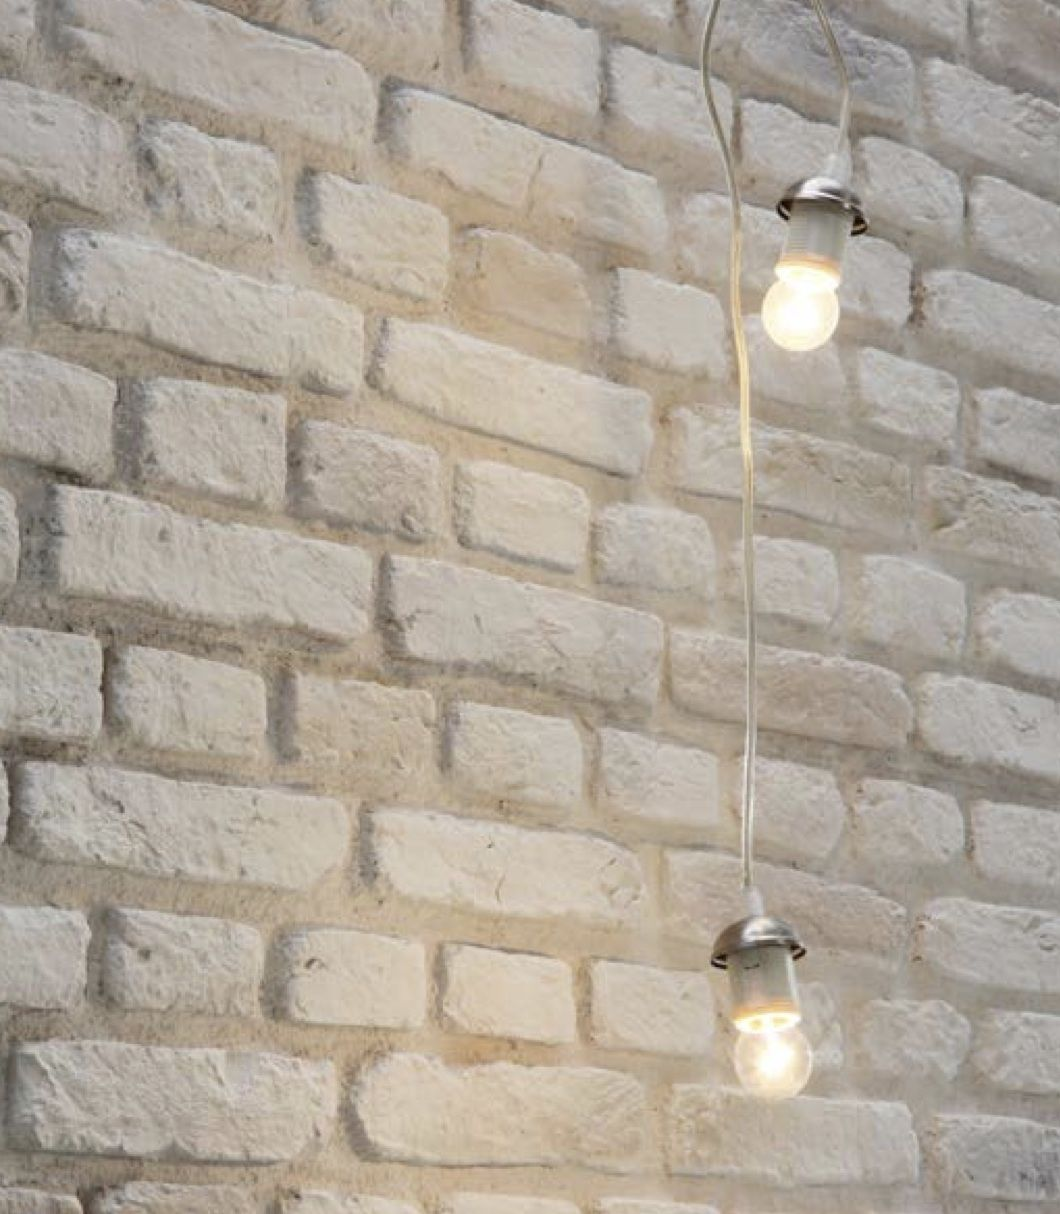 Dreamwall New Panels Urban Fauxbrick Wall Panels Brick Wall Paneling Fake Brick Wall Faux Brick Panels